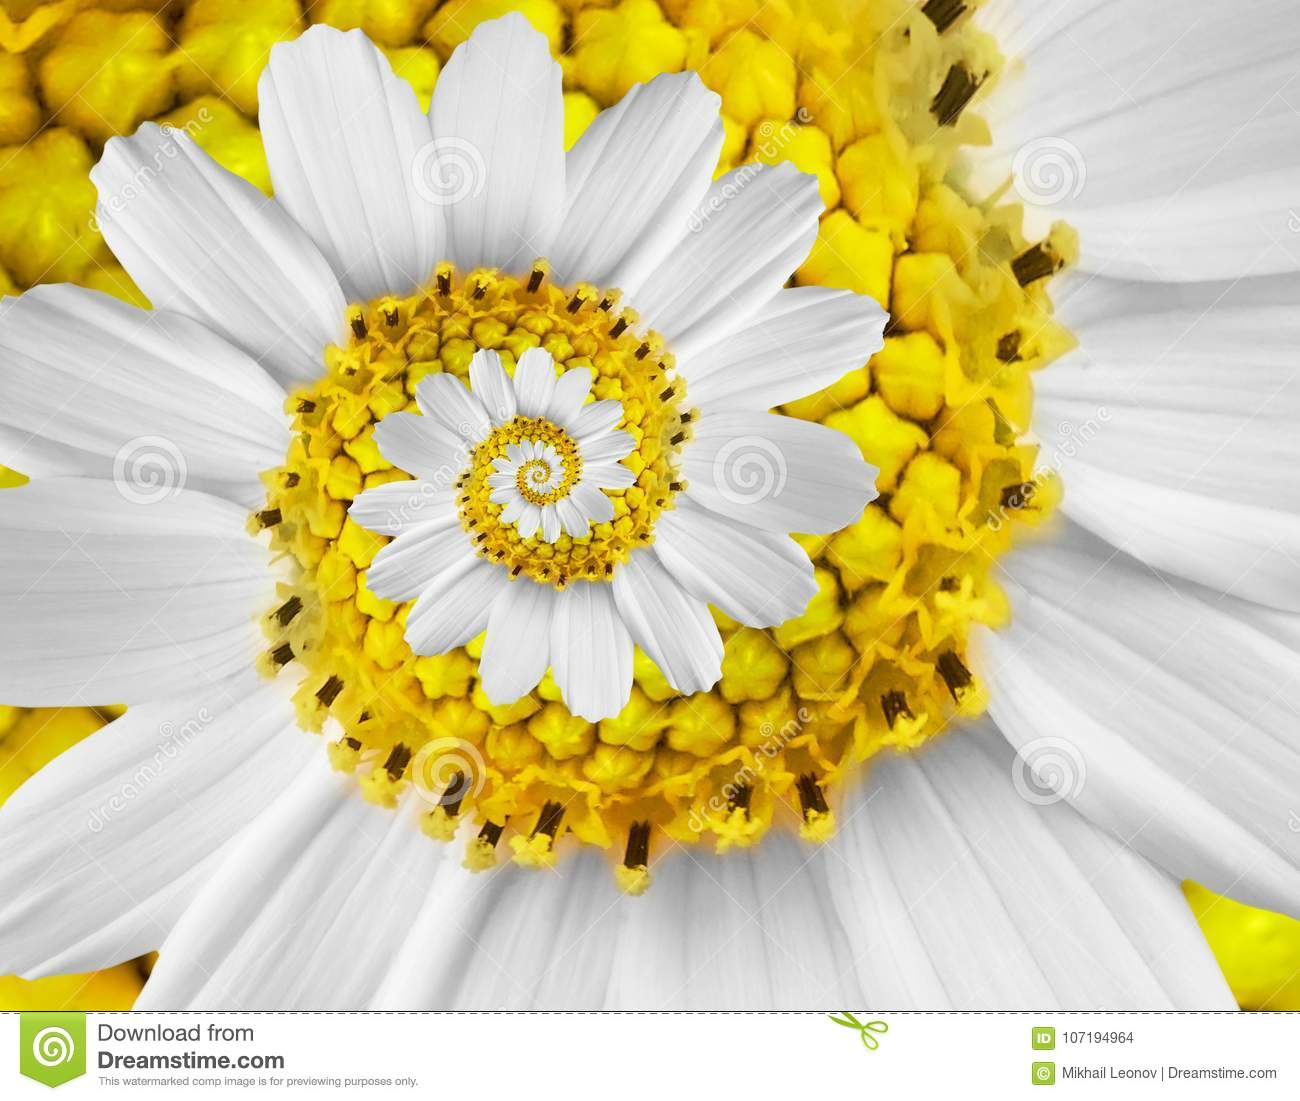 White yellow camomile daisy cosmos kosmeya flower spiral abstract fractal effect pattern background White flower spiral abstract